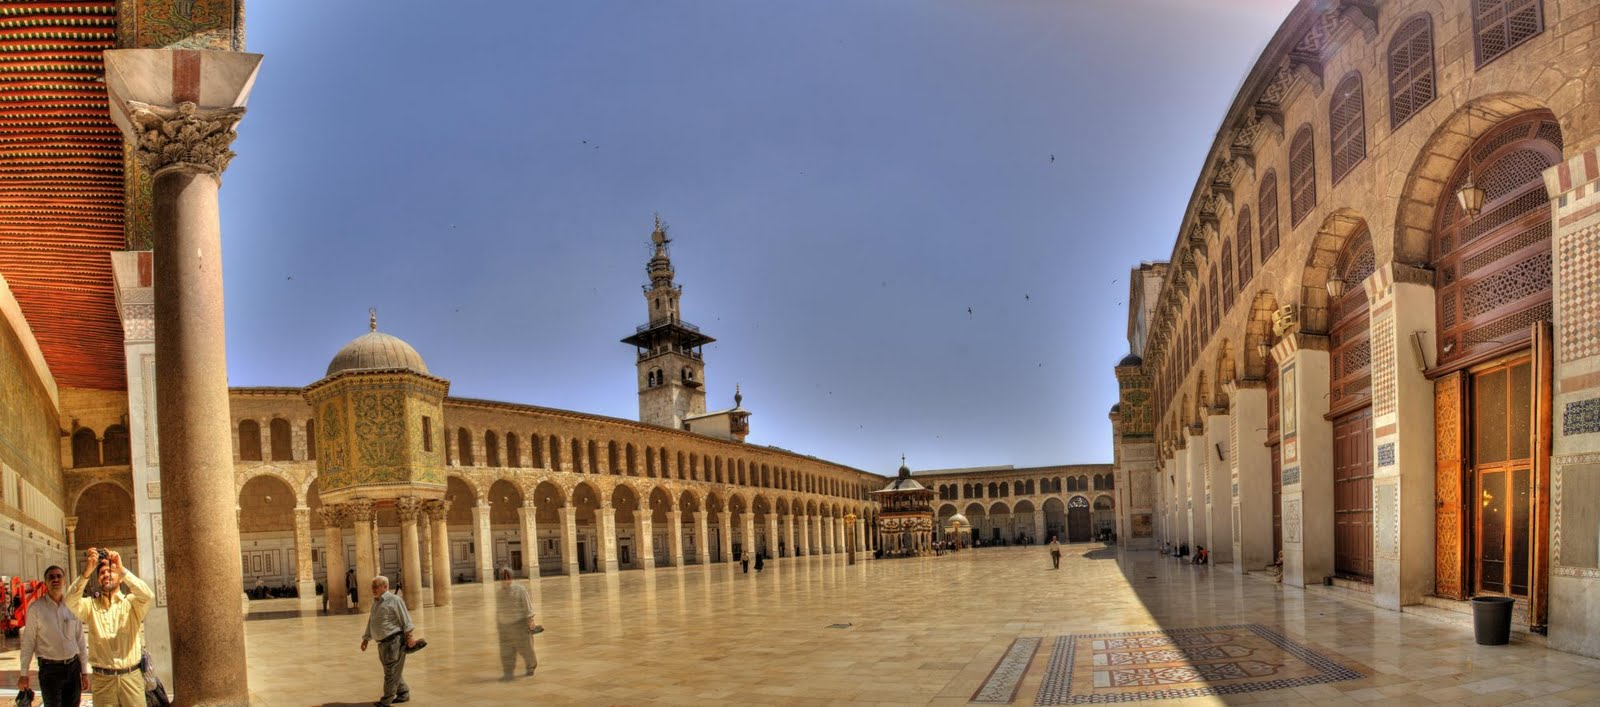 MY ARCHITECTURAL MOLESKINE®: THE GREAT MOSQUE OF DAMASCUS